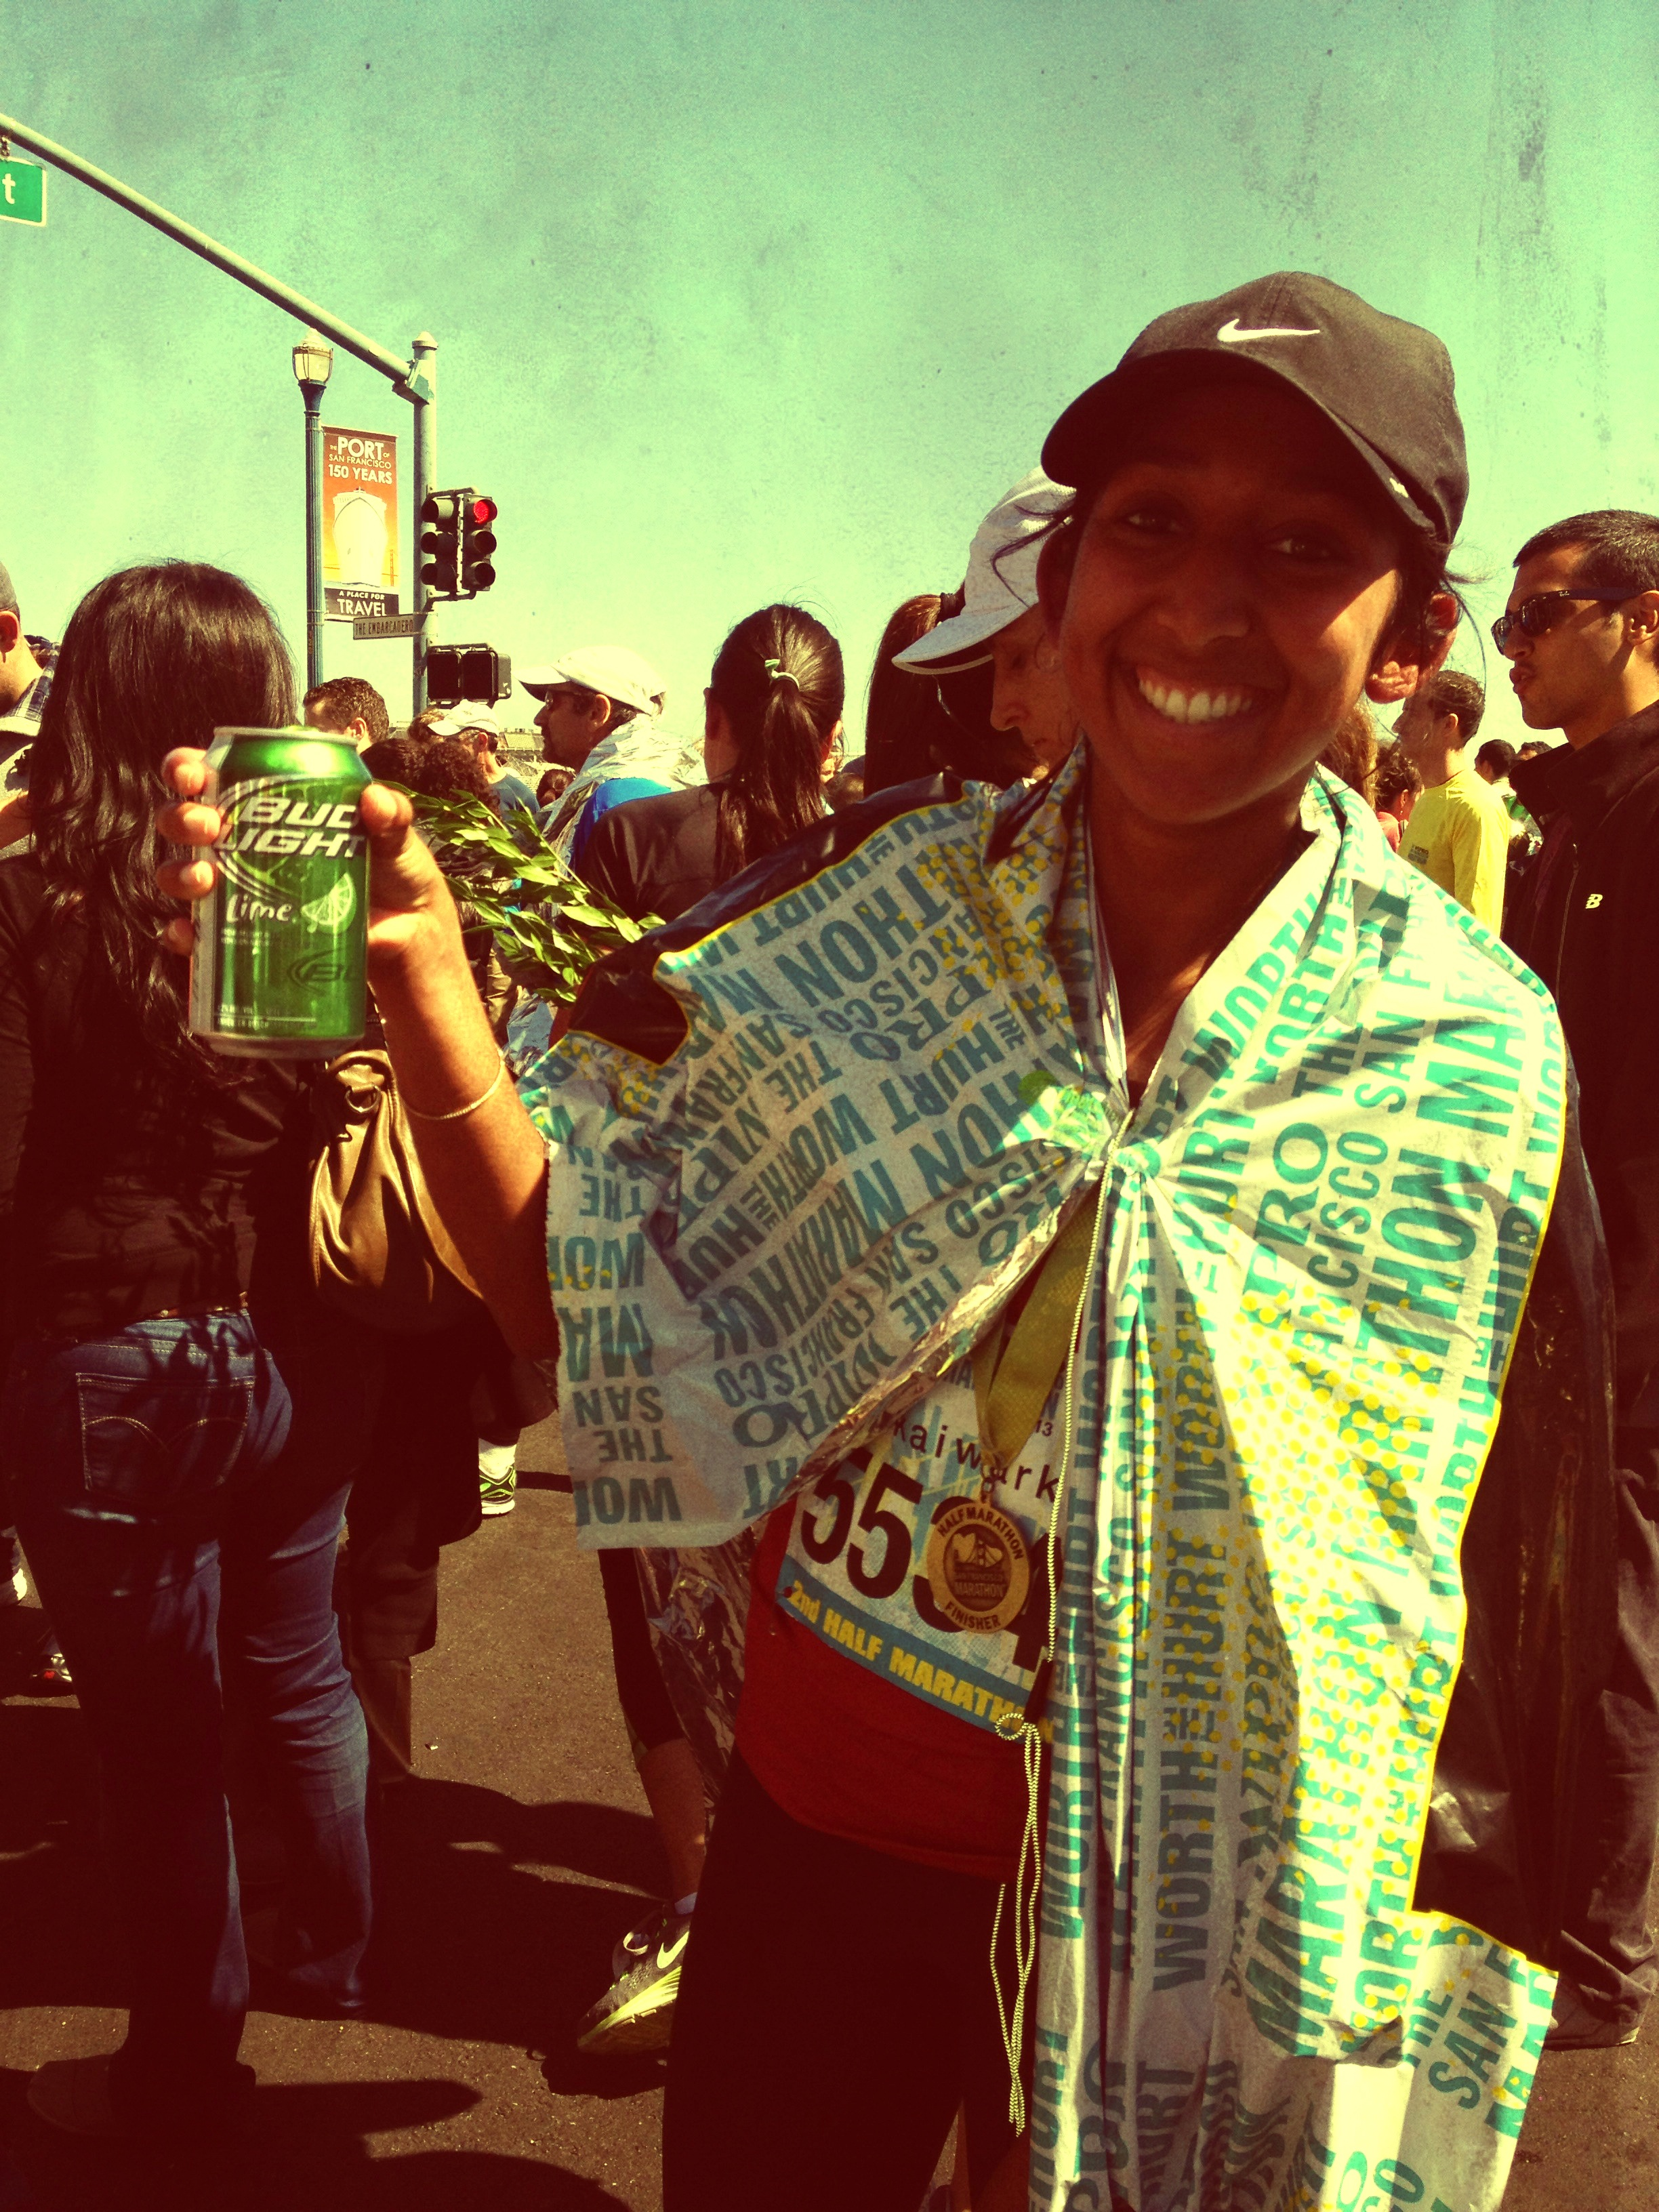 Congrats to my amazing friend Shikha on finishing the San Francisco Half Marathon ahead of her original time!